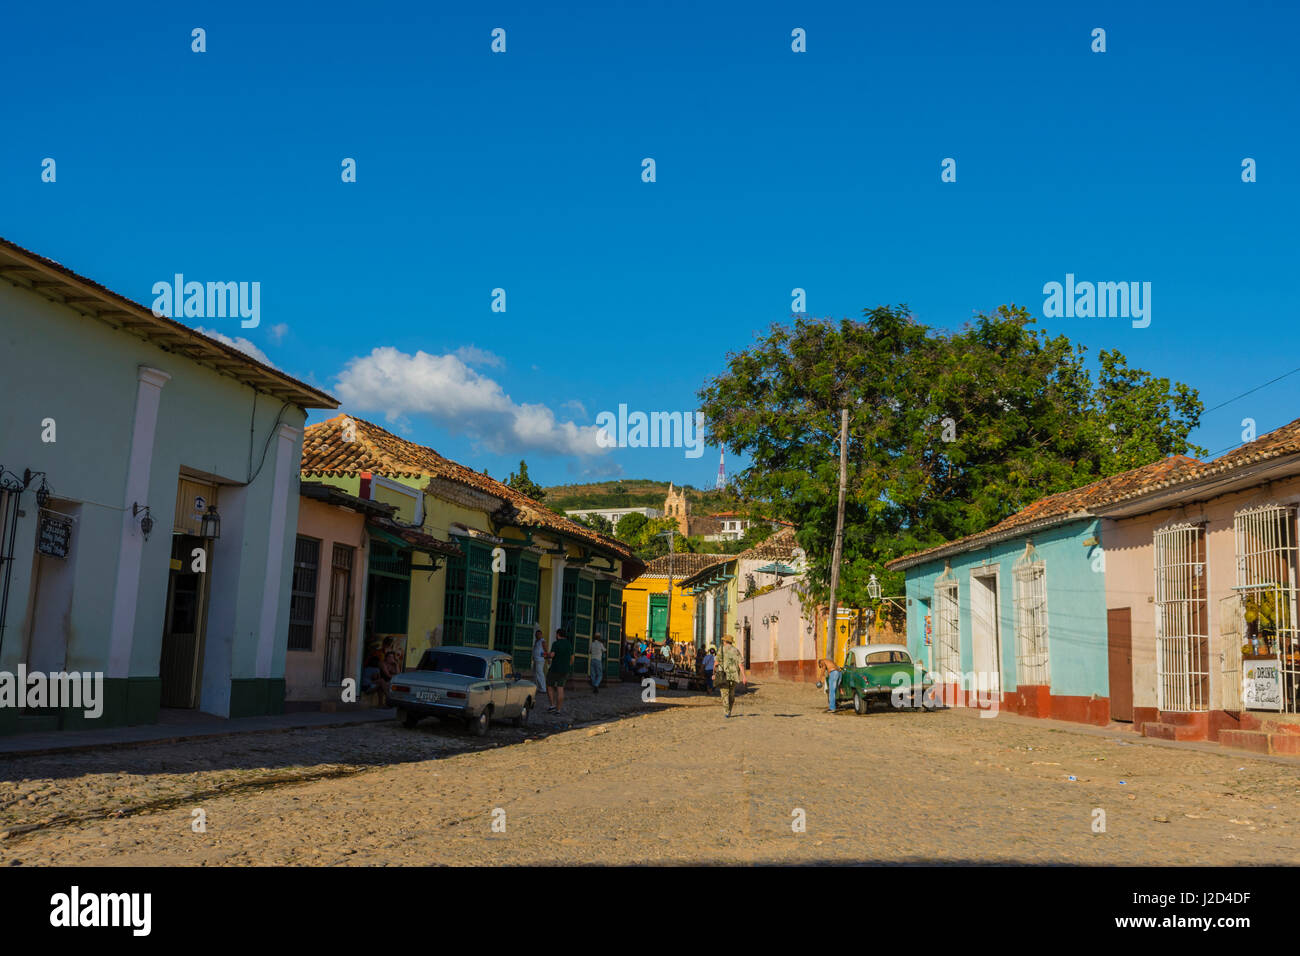 Cuba. Sancti Spiritus Province. Trinidad. Cobbled streets lined with colorful houses. - Stock Image